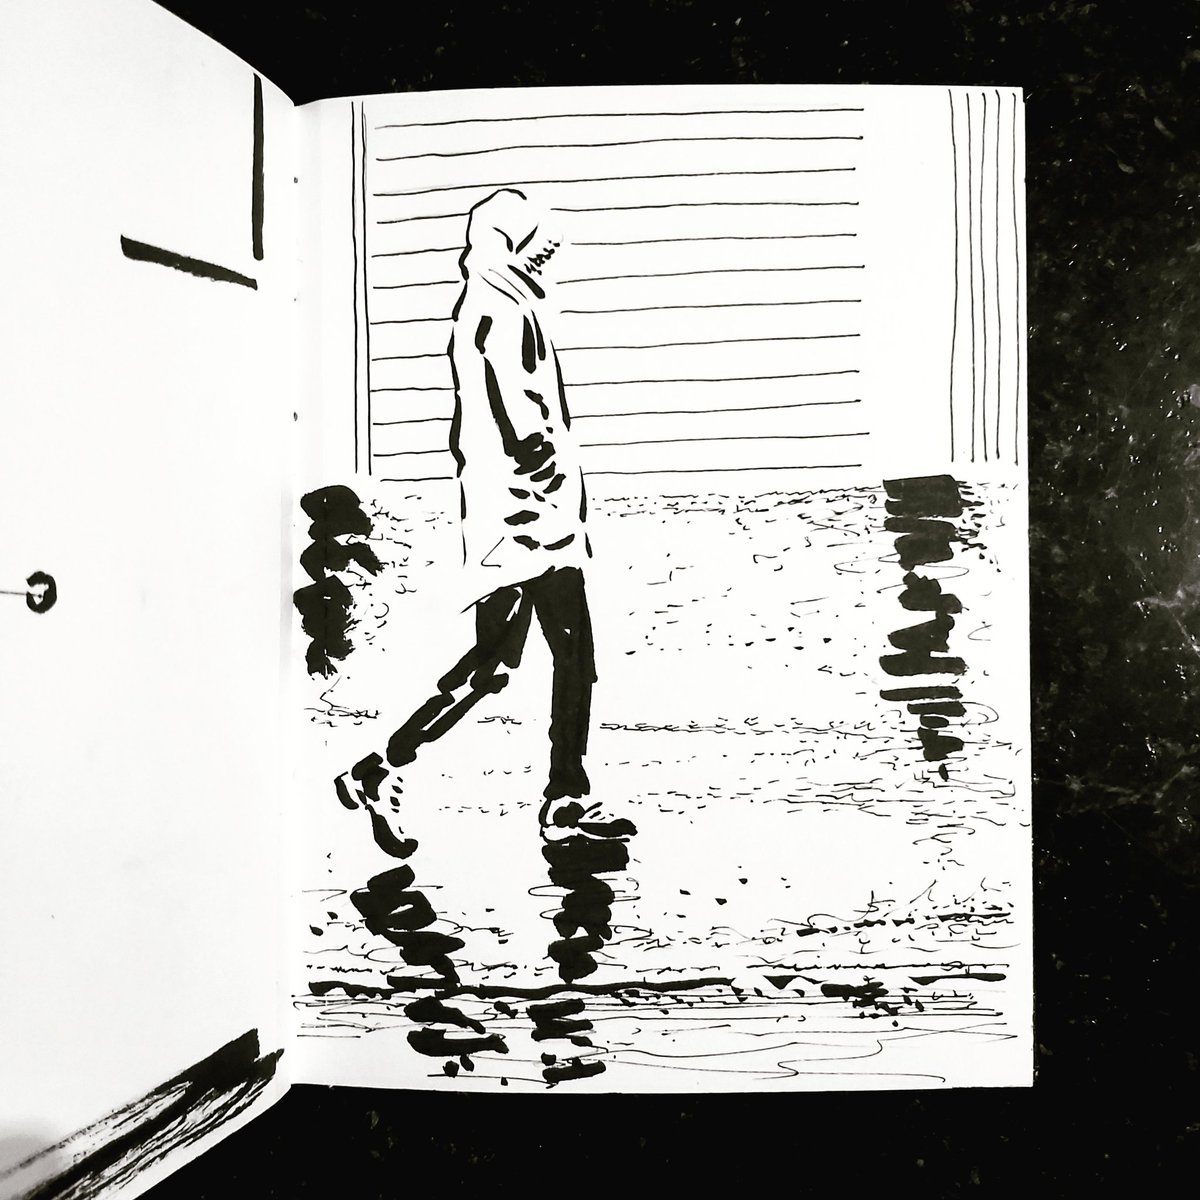 From the Inside 2 Day 111 (260 total) #isolation study Kitchen window Passerby No 150 #isolationlife #stayathome #lockdown #lockdown2uk #sketchbook #sketch #drawing #draw #doodle #ink #lineart #lifedrawing #figuredrawing #walk #artoftheday #art #artwork #artist #illustration